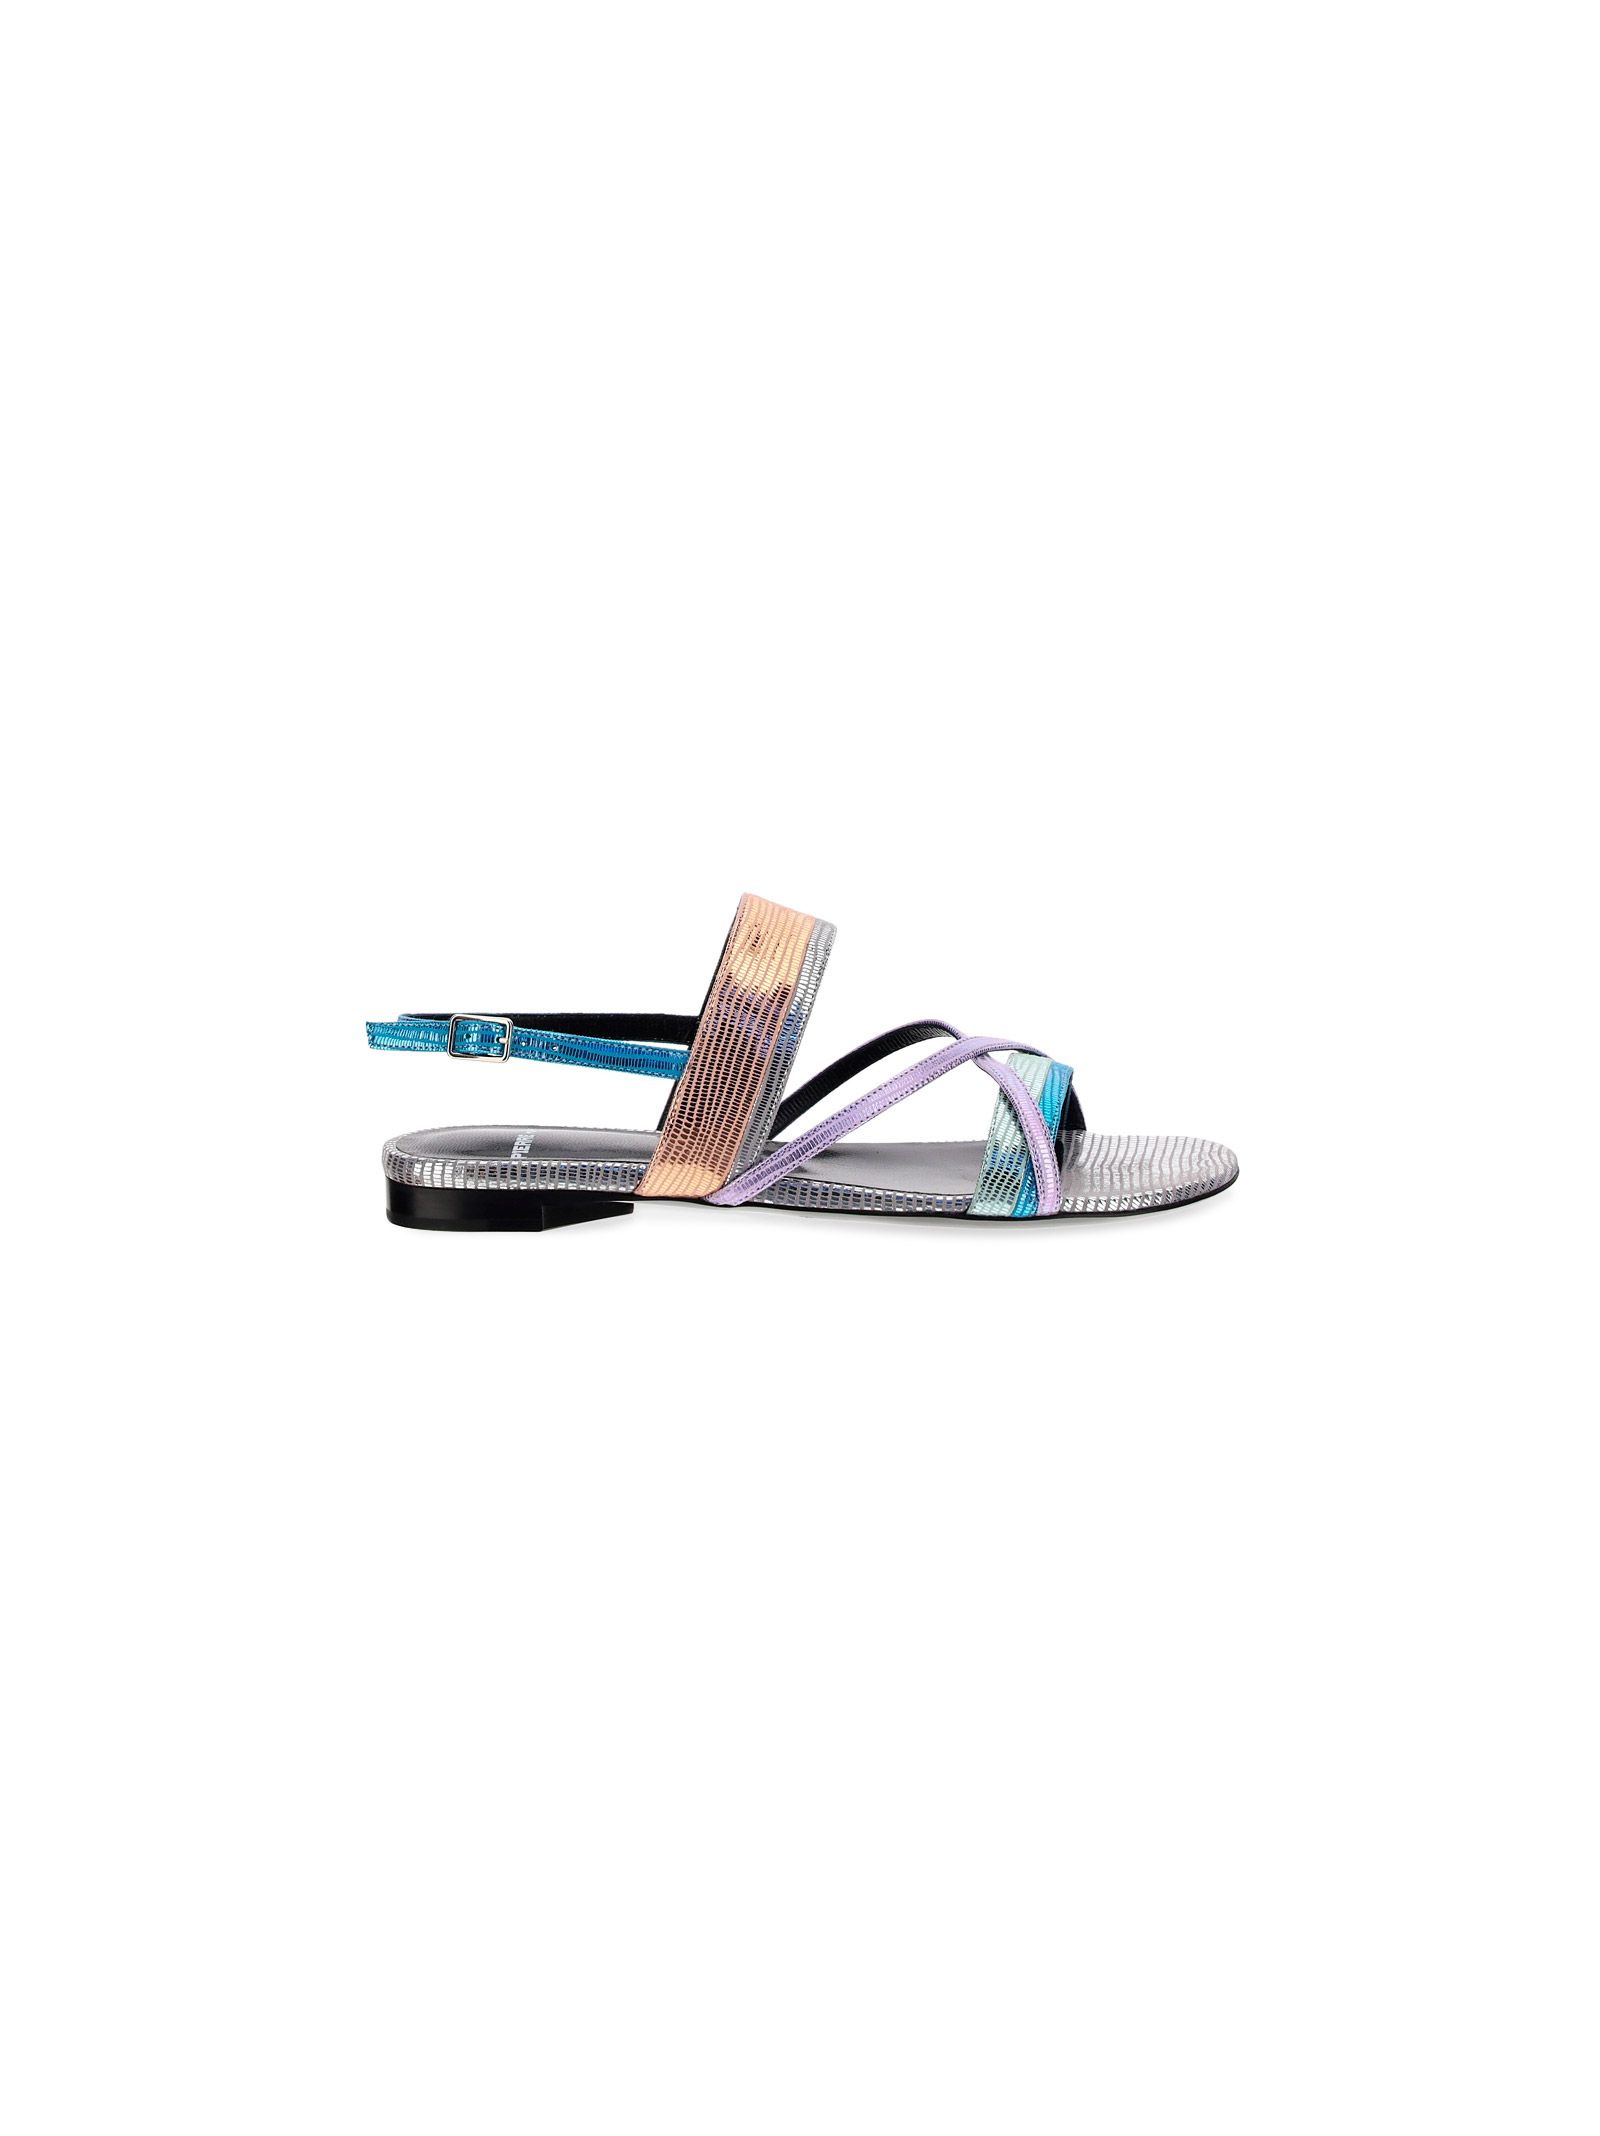 Pierre Hardy PIERRE HARDY WOMEN'S VD03SILVER SILVER OTHER MATERIALS SANDALS